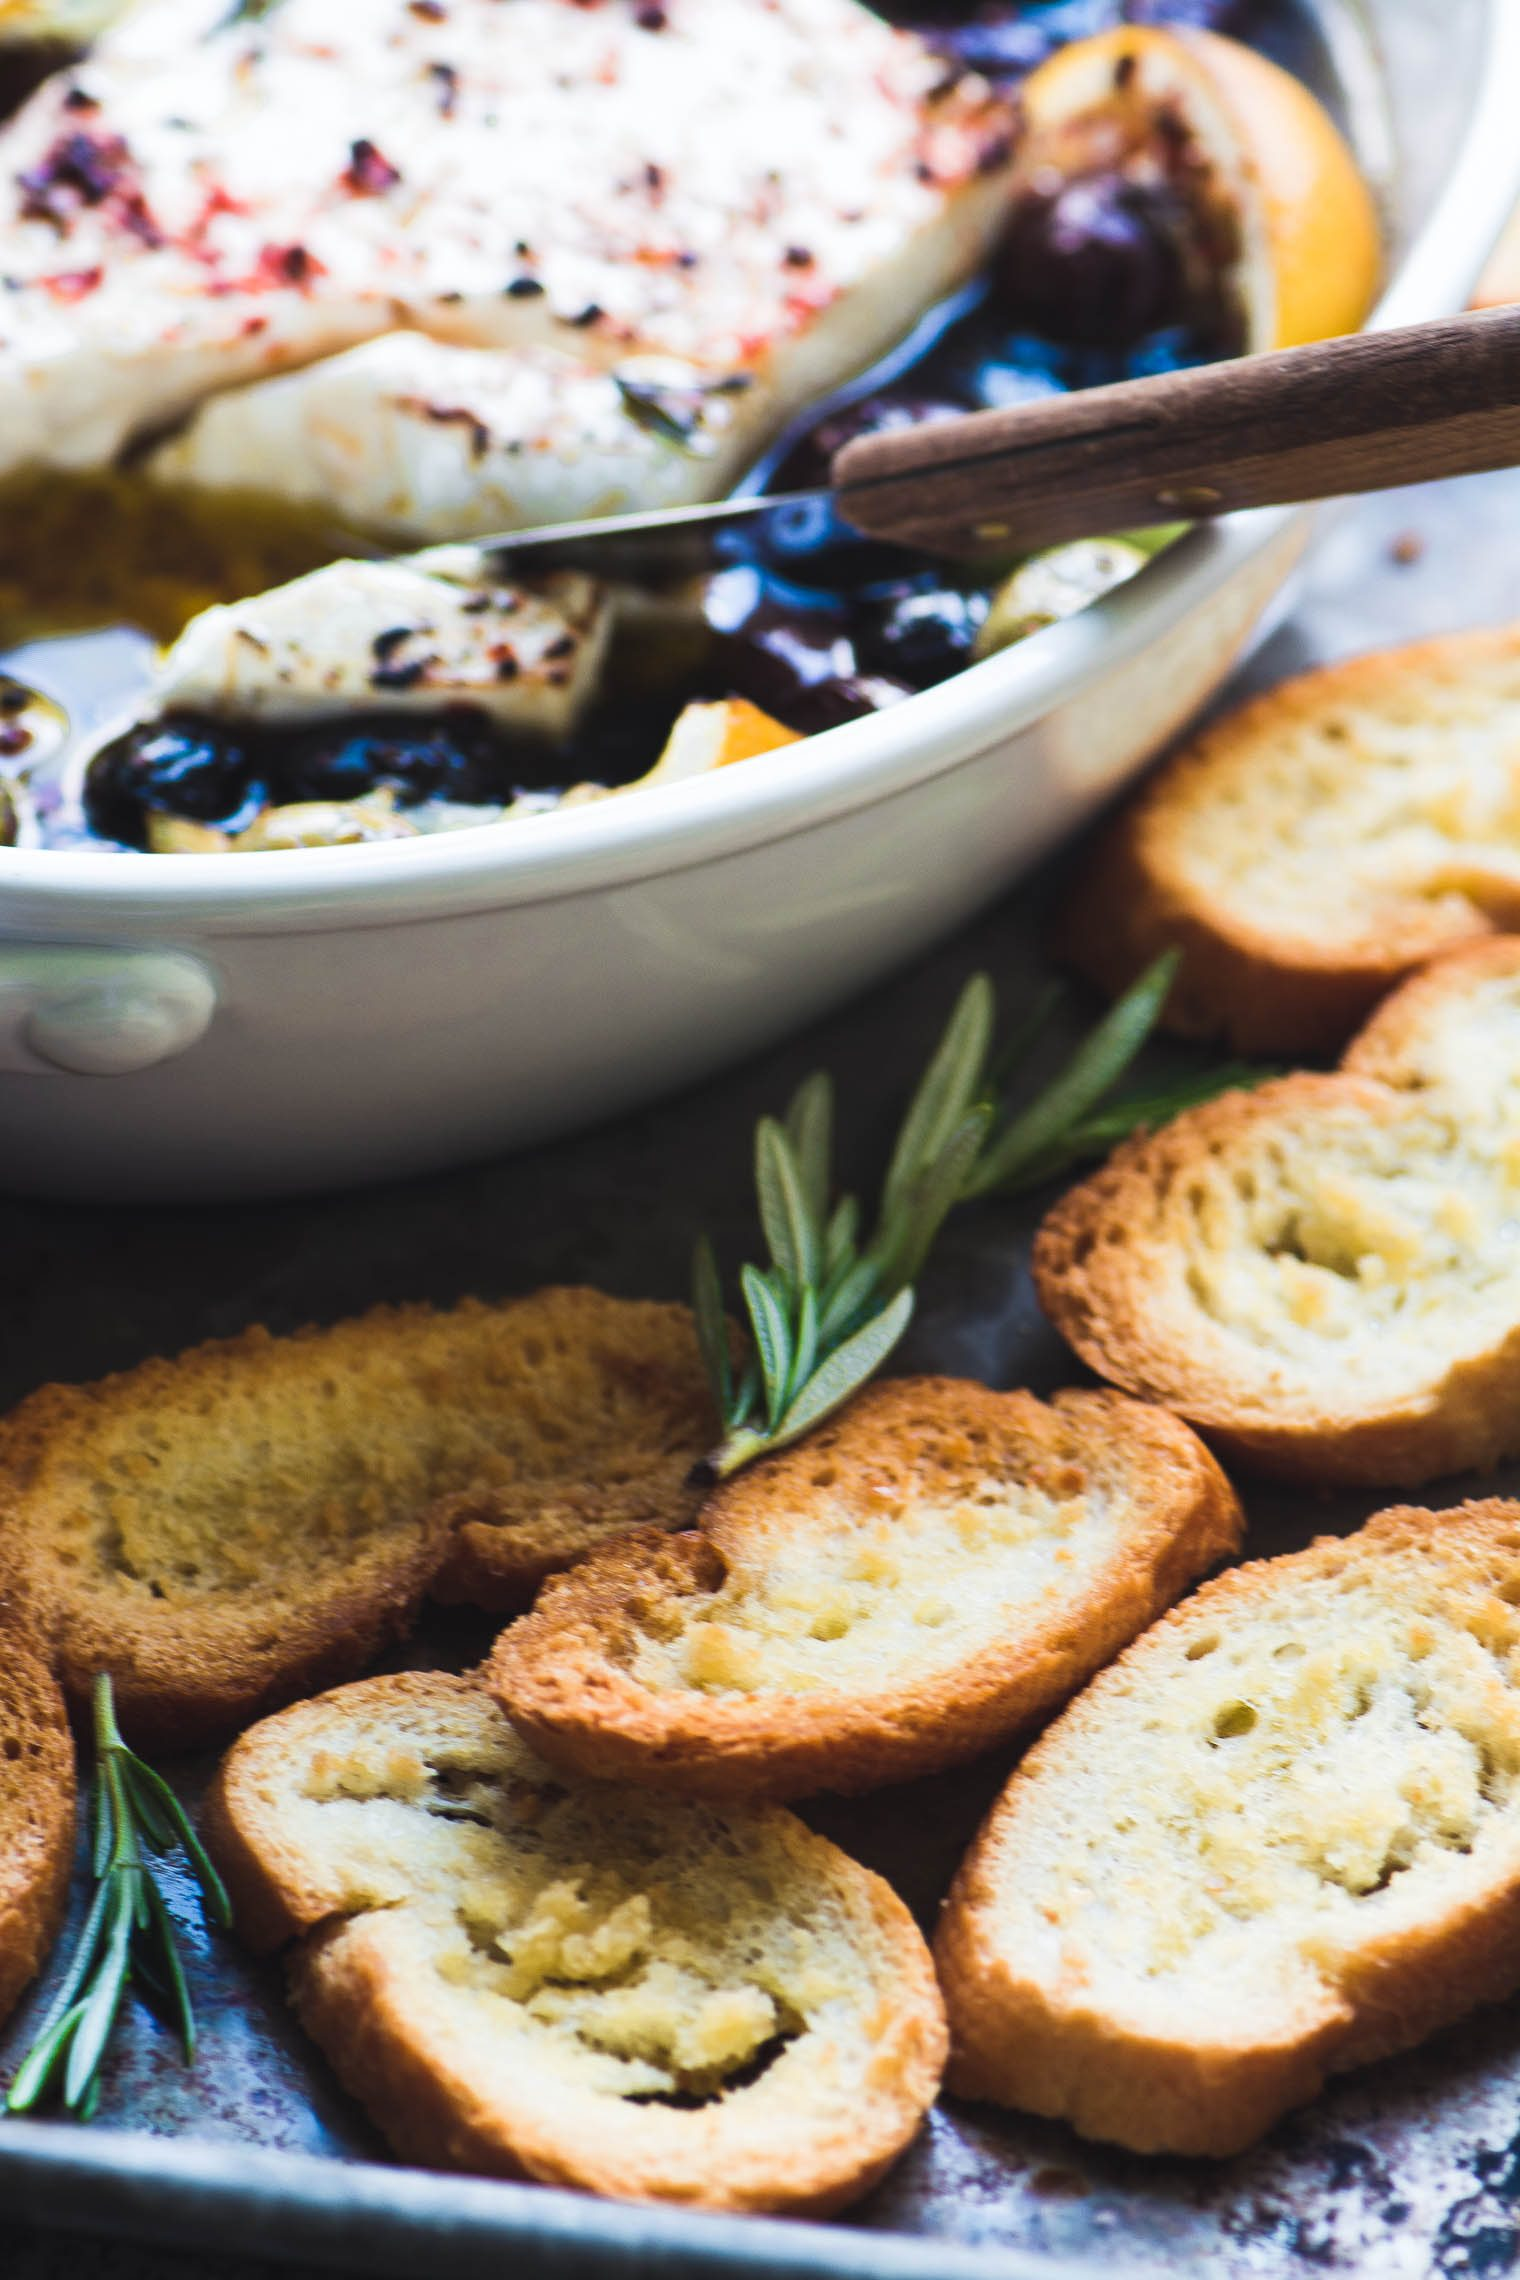 Baked feta cheese with olives, lemon, and rosemary with toasted bread